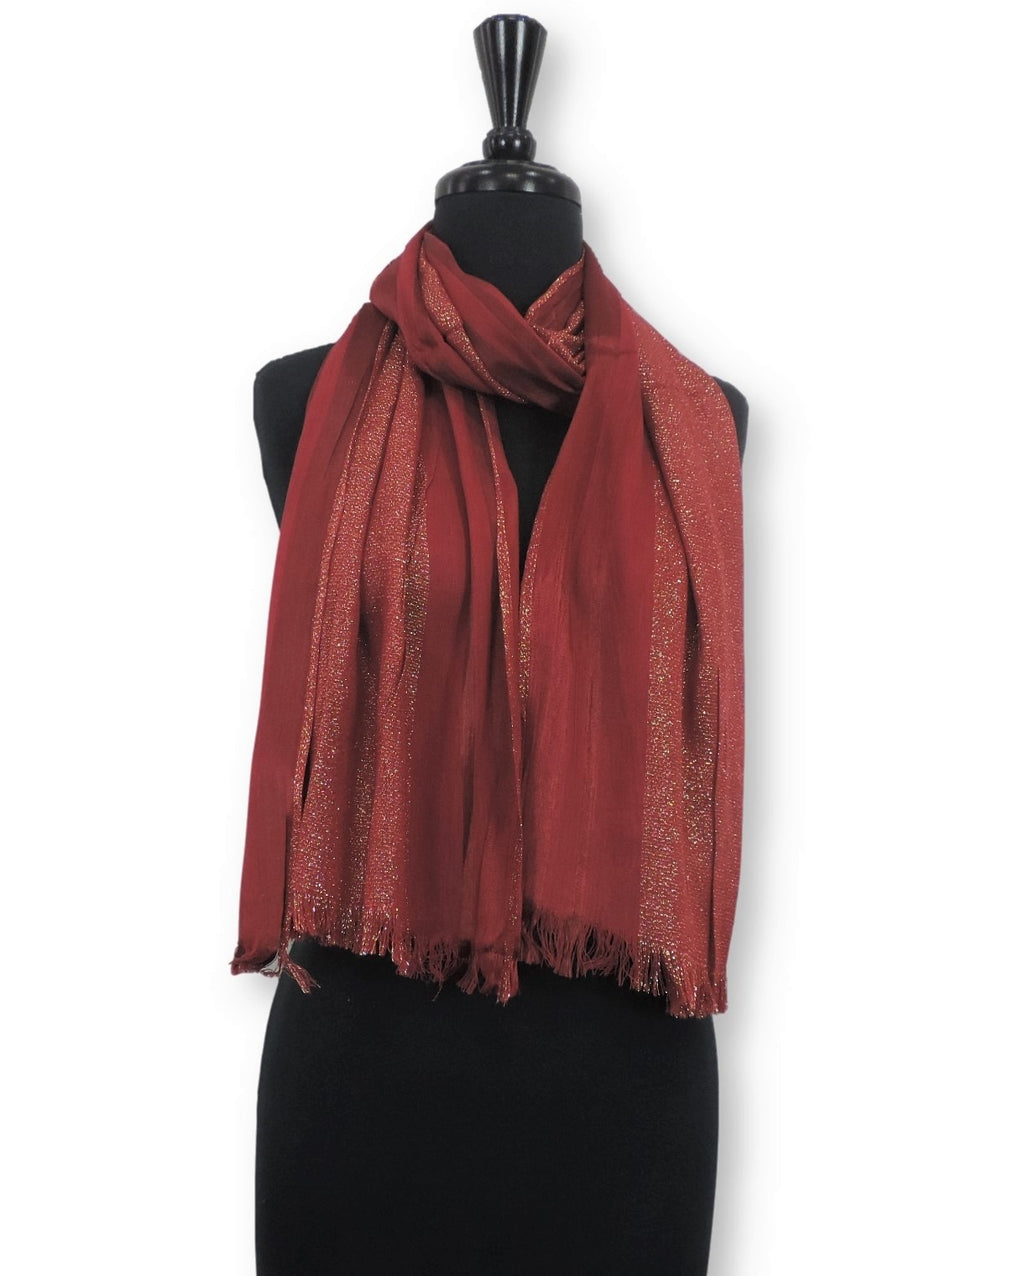 Blood Shimmer Cotton Scarf - Global Trendz Fashion®